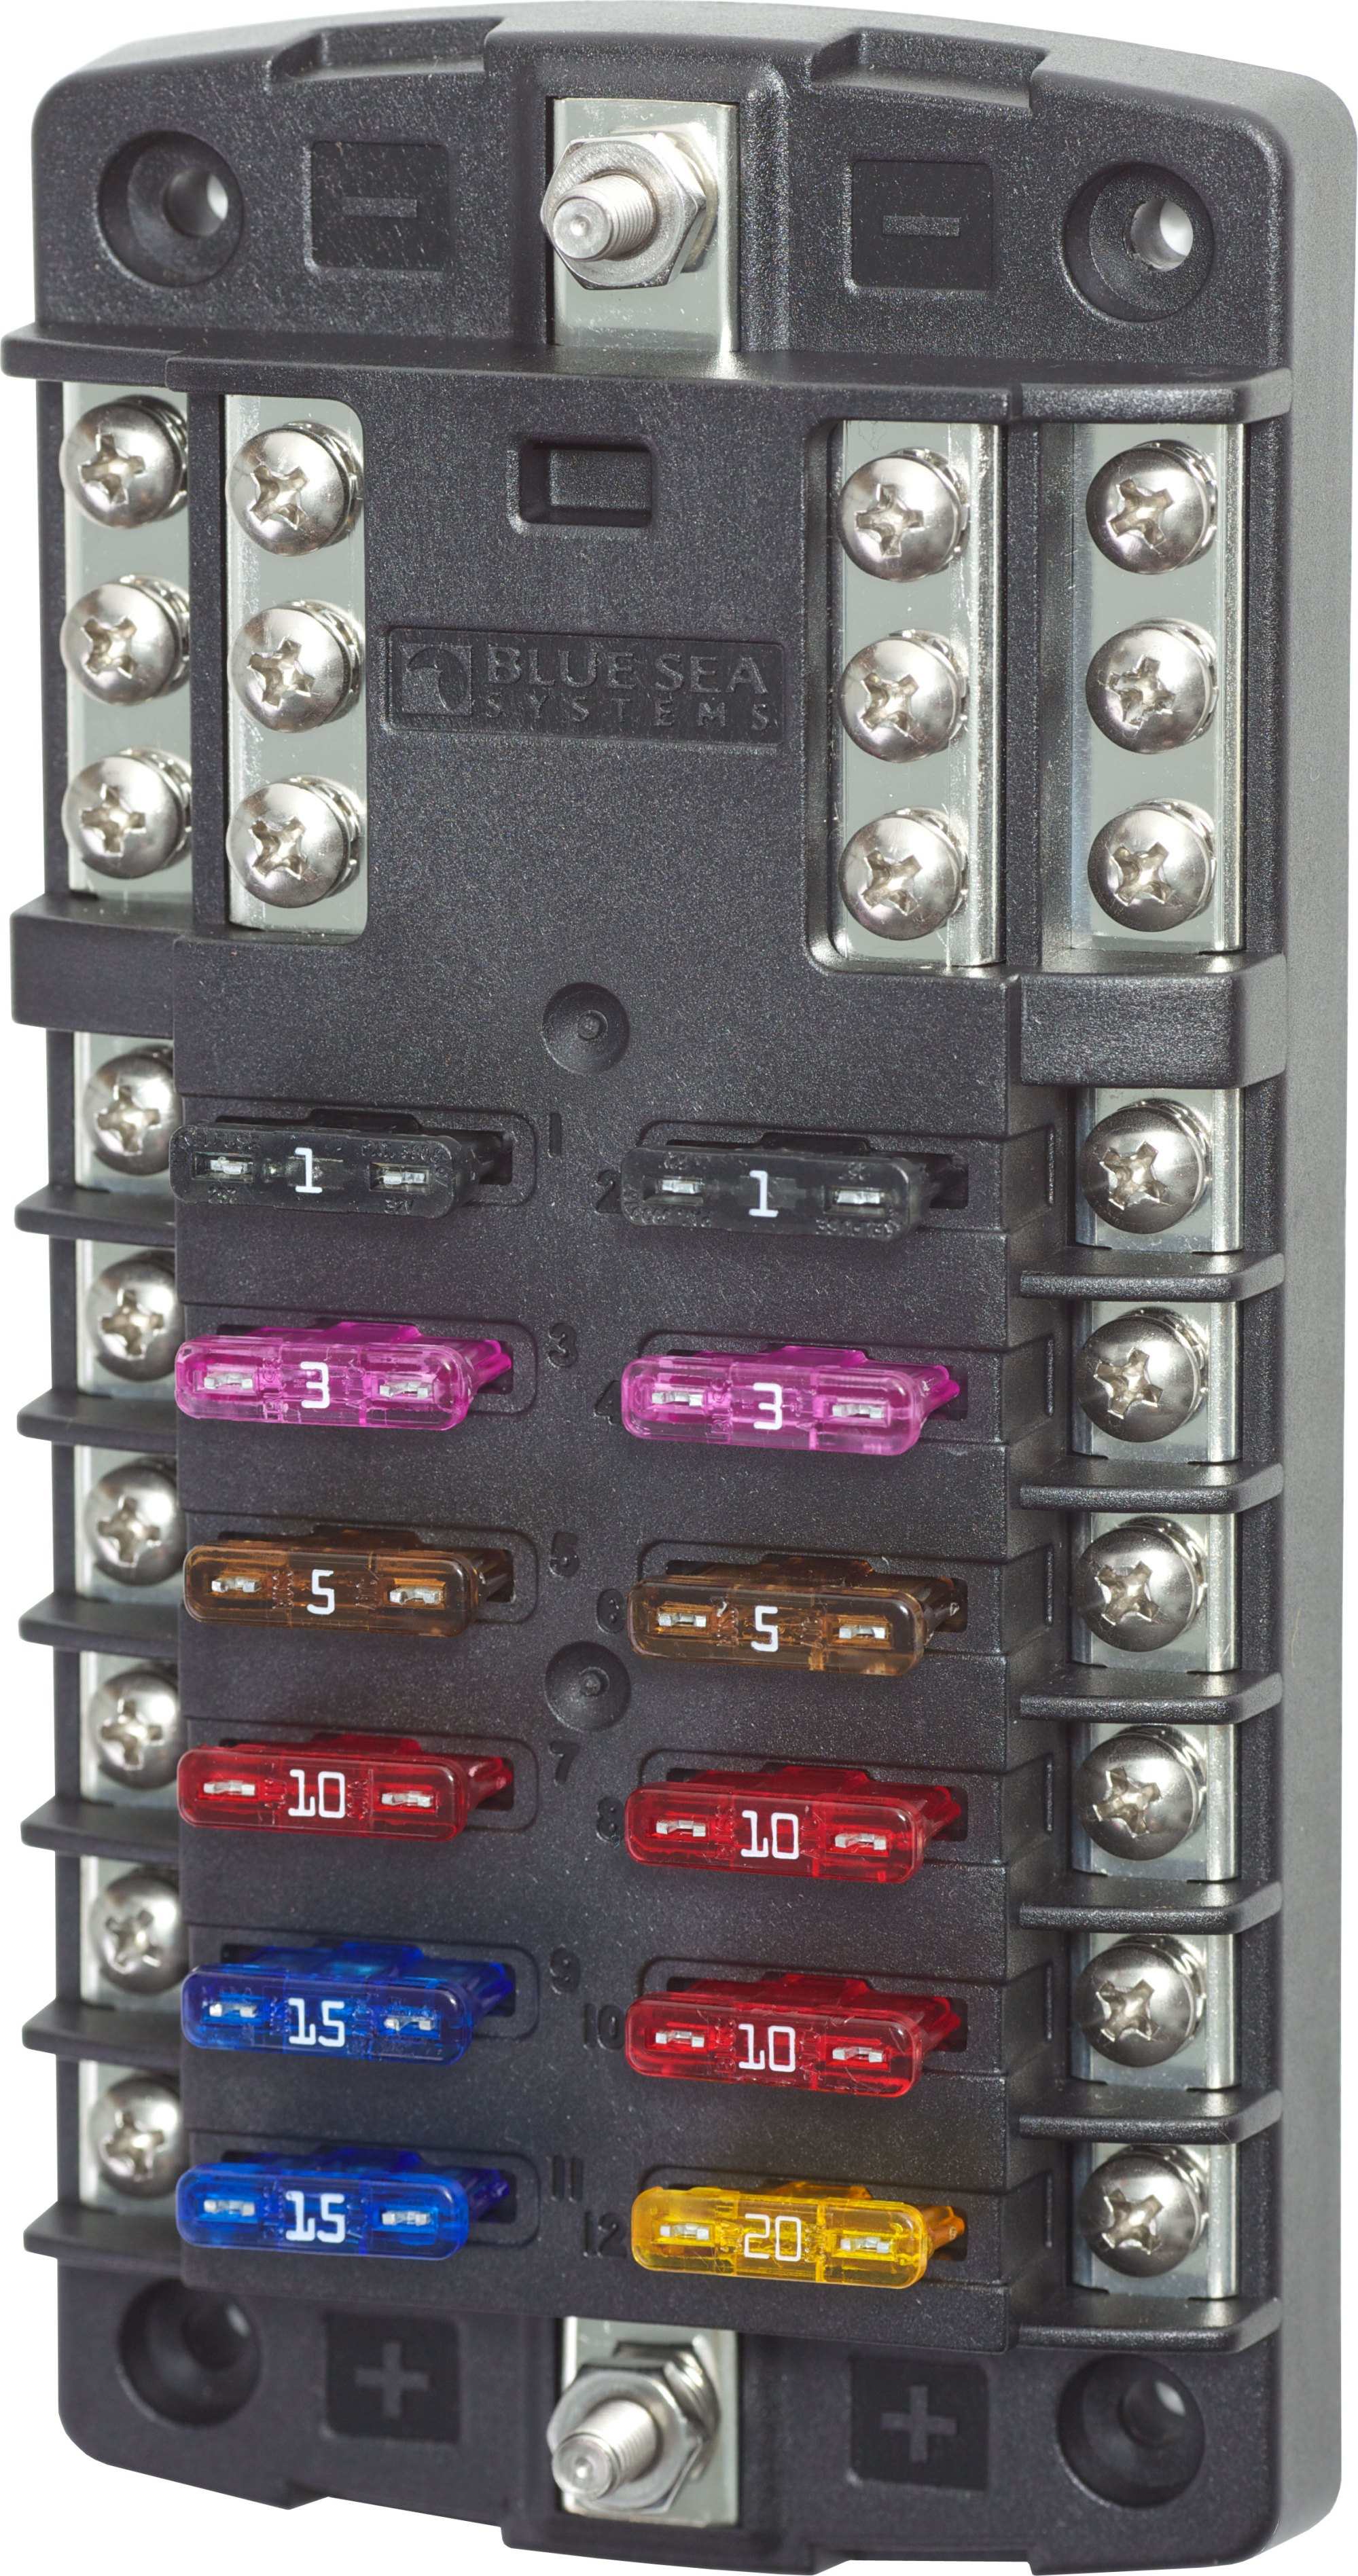 hight resolution of marine dc fuse box wiring diagram 12v marine fuse box with negative wiring diagram amest blade